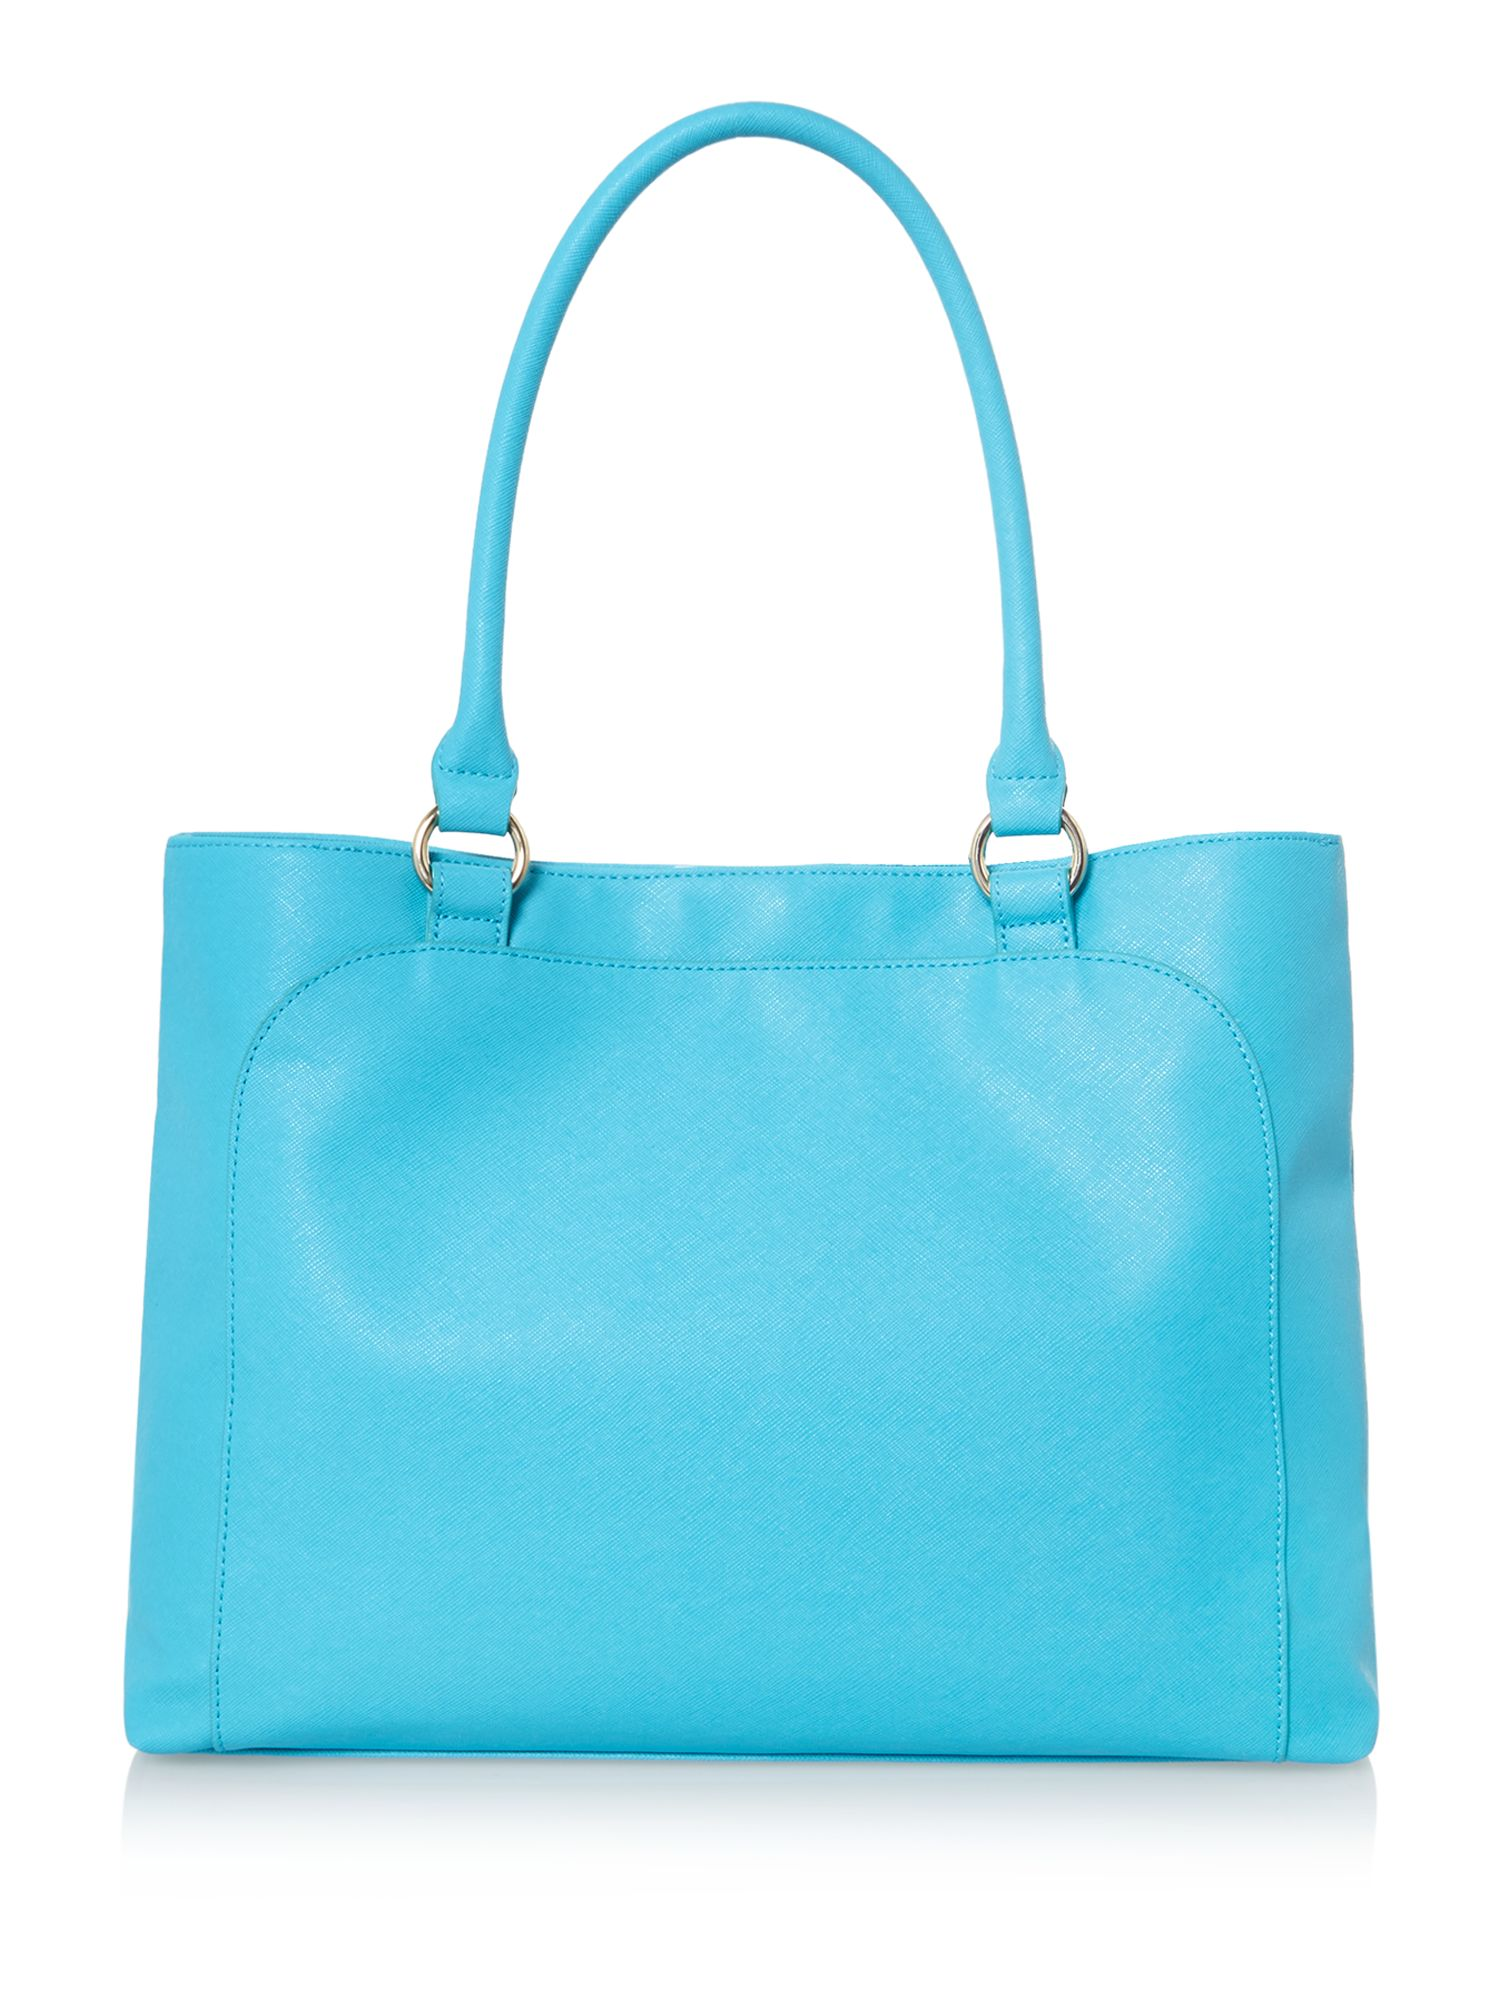 Turquoise leather shoulder bag